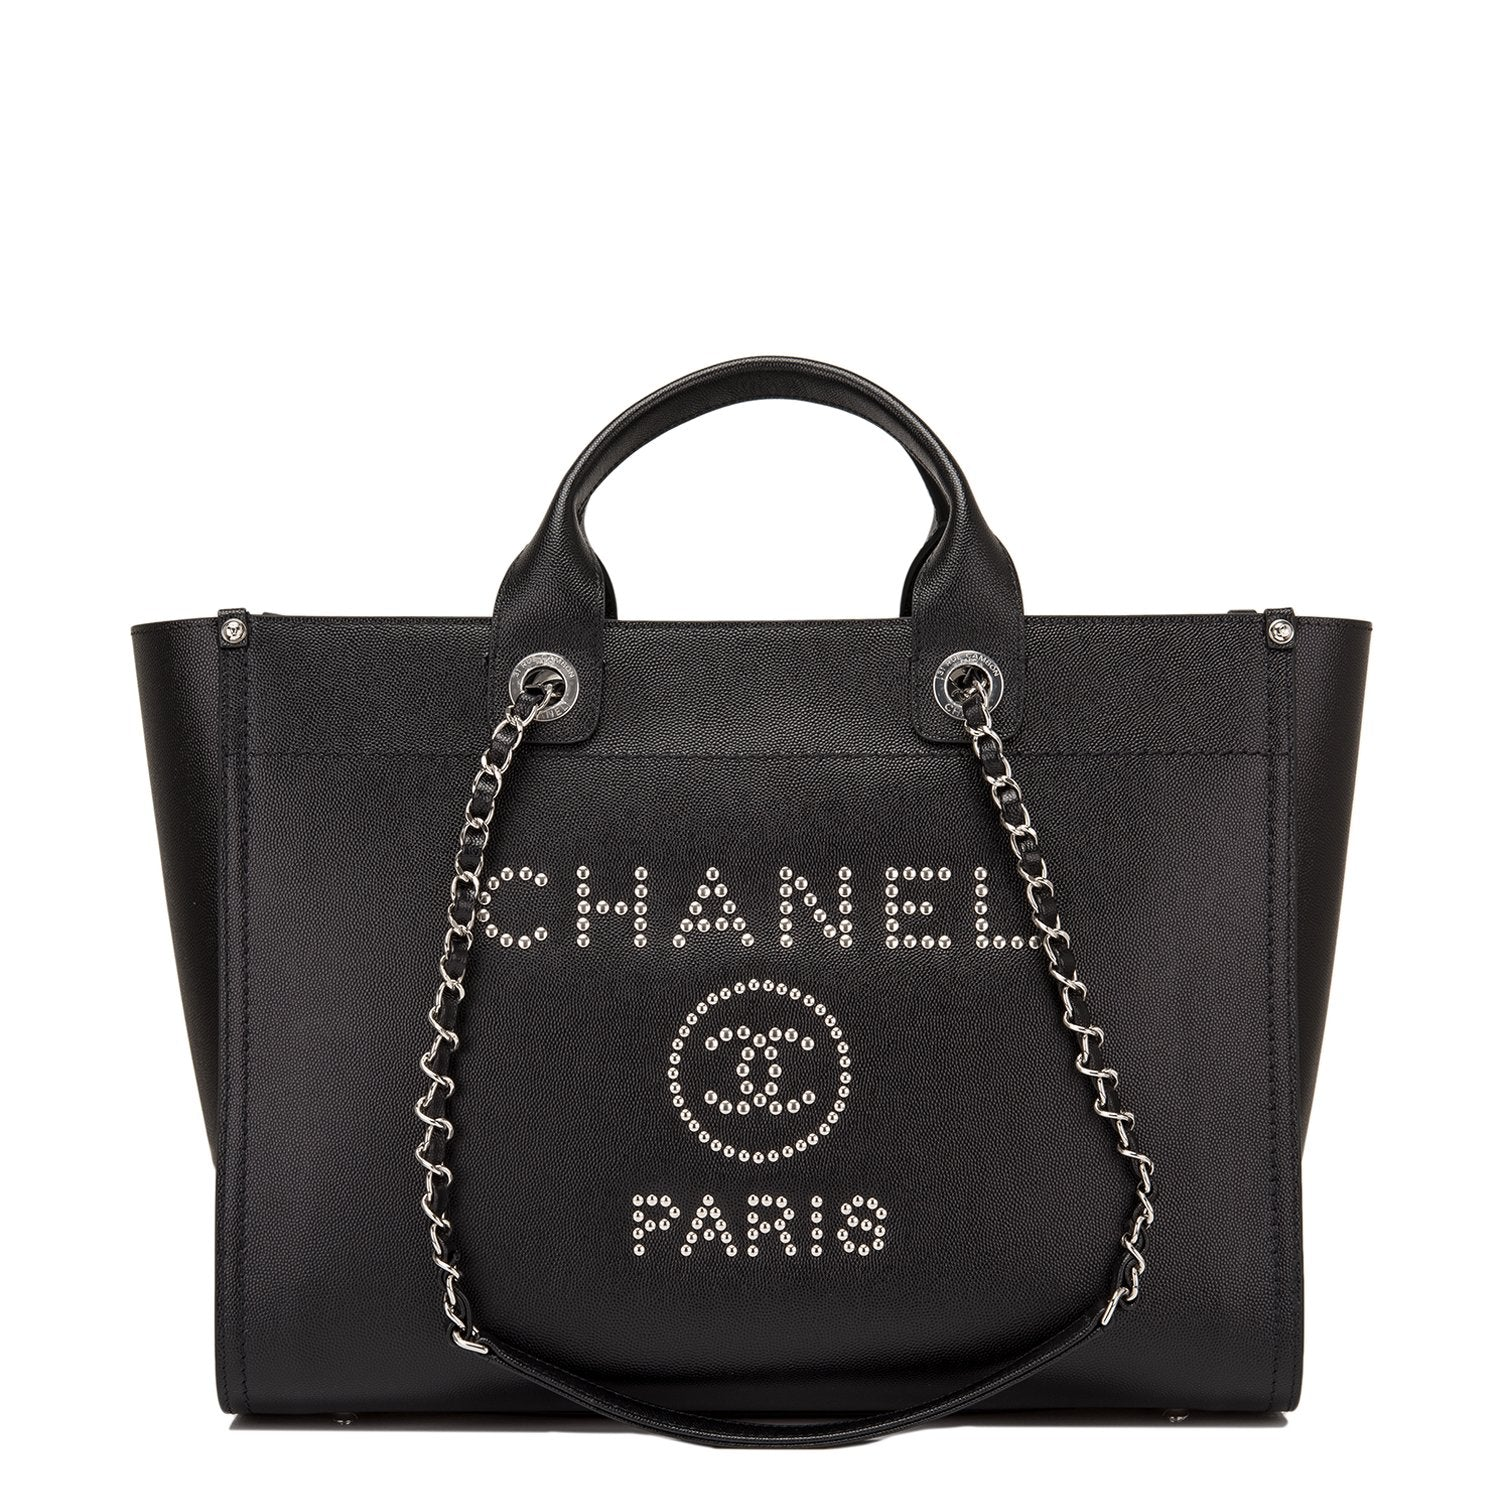 520bf5d2538f Chanel Black Leather Medium Deauville Tote – Madison Avenue Couture